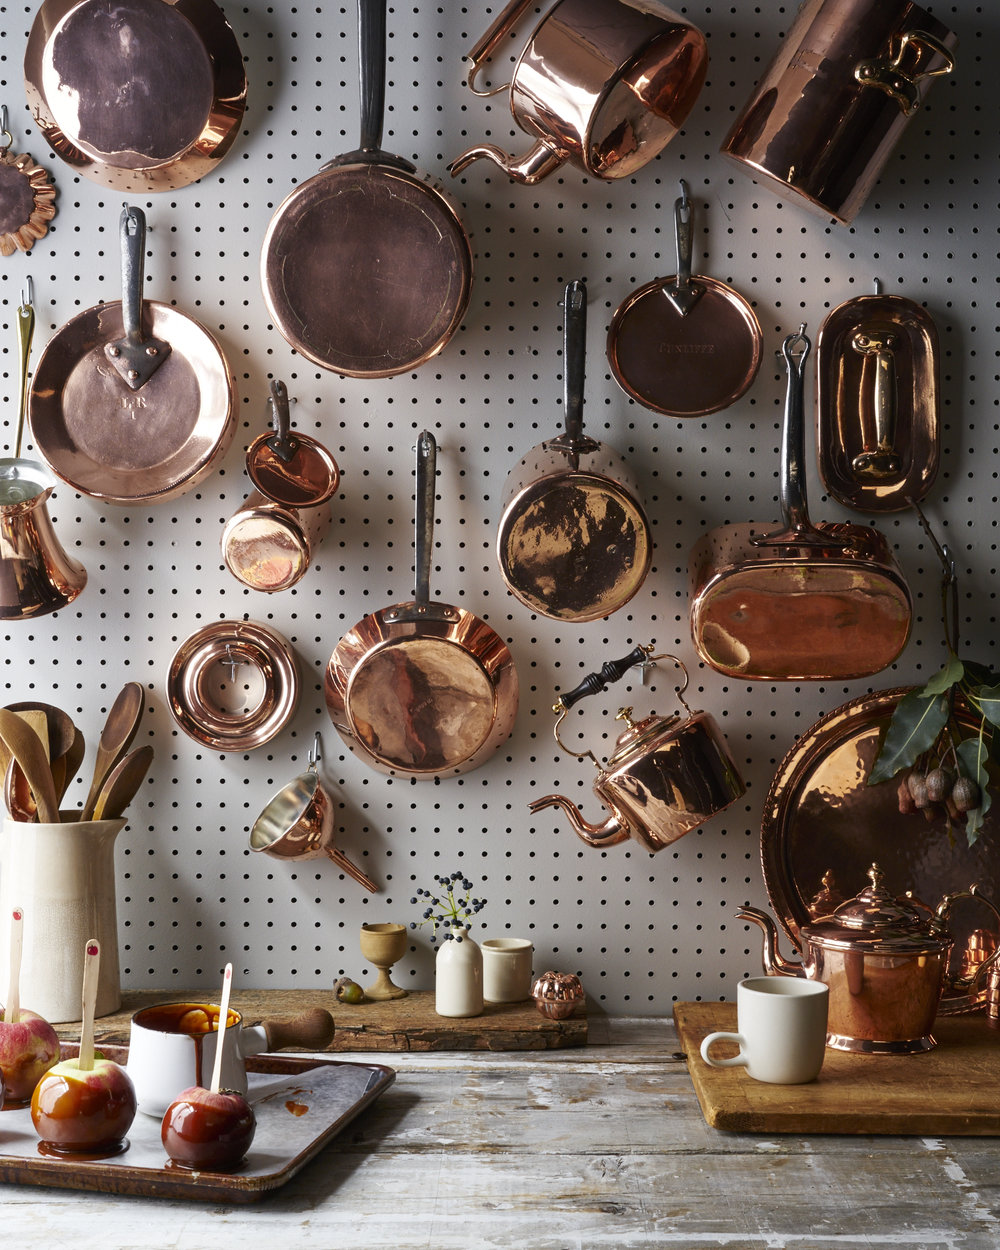 2015-1001_coppermill-kitchen_october-2015_email-collection_bobbi-lin_2360.jpg